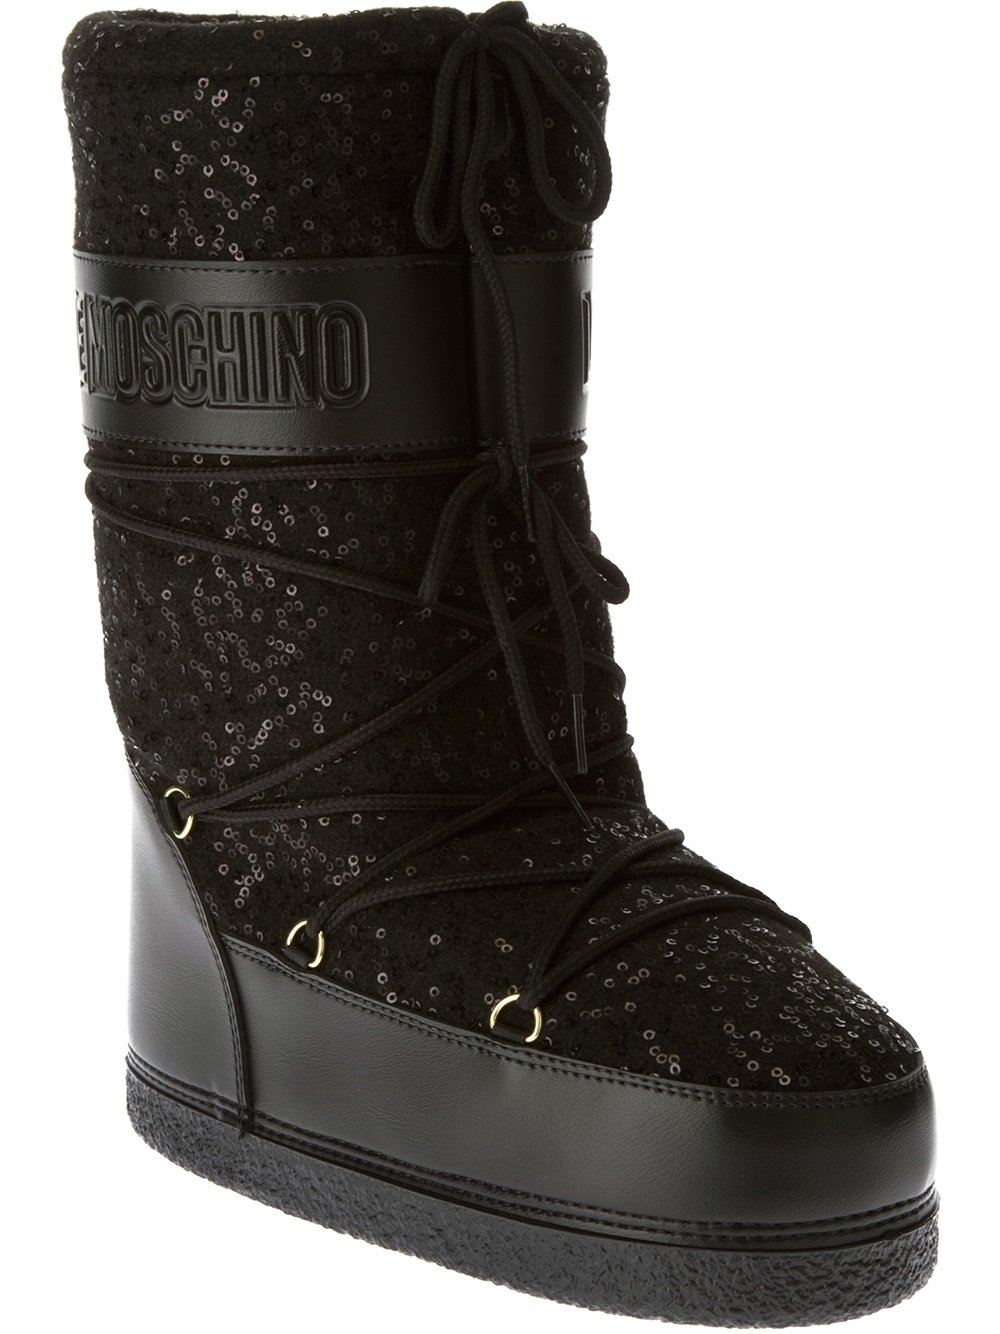 Lyst - Love Moschino Sequined Moon Boot in Black